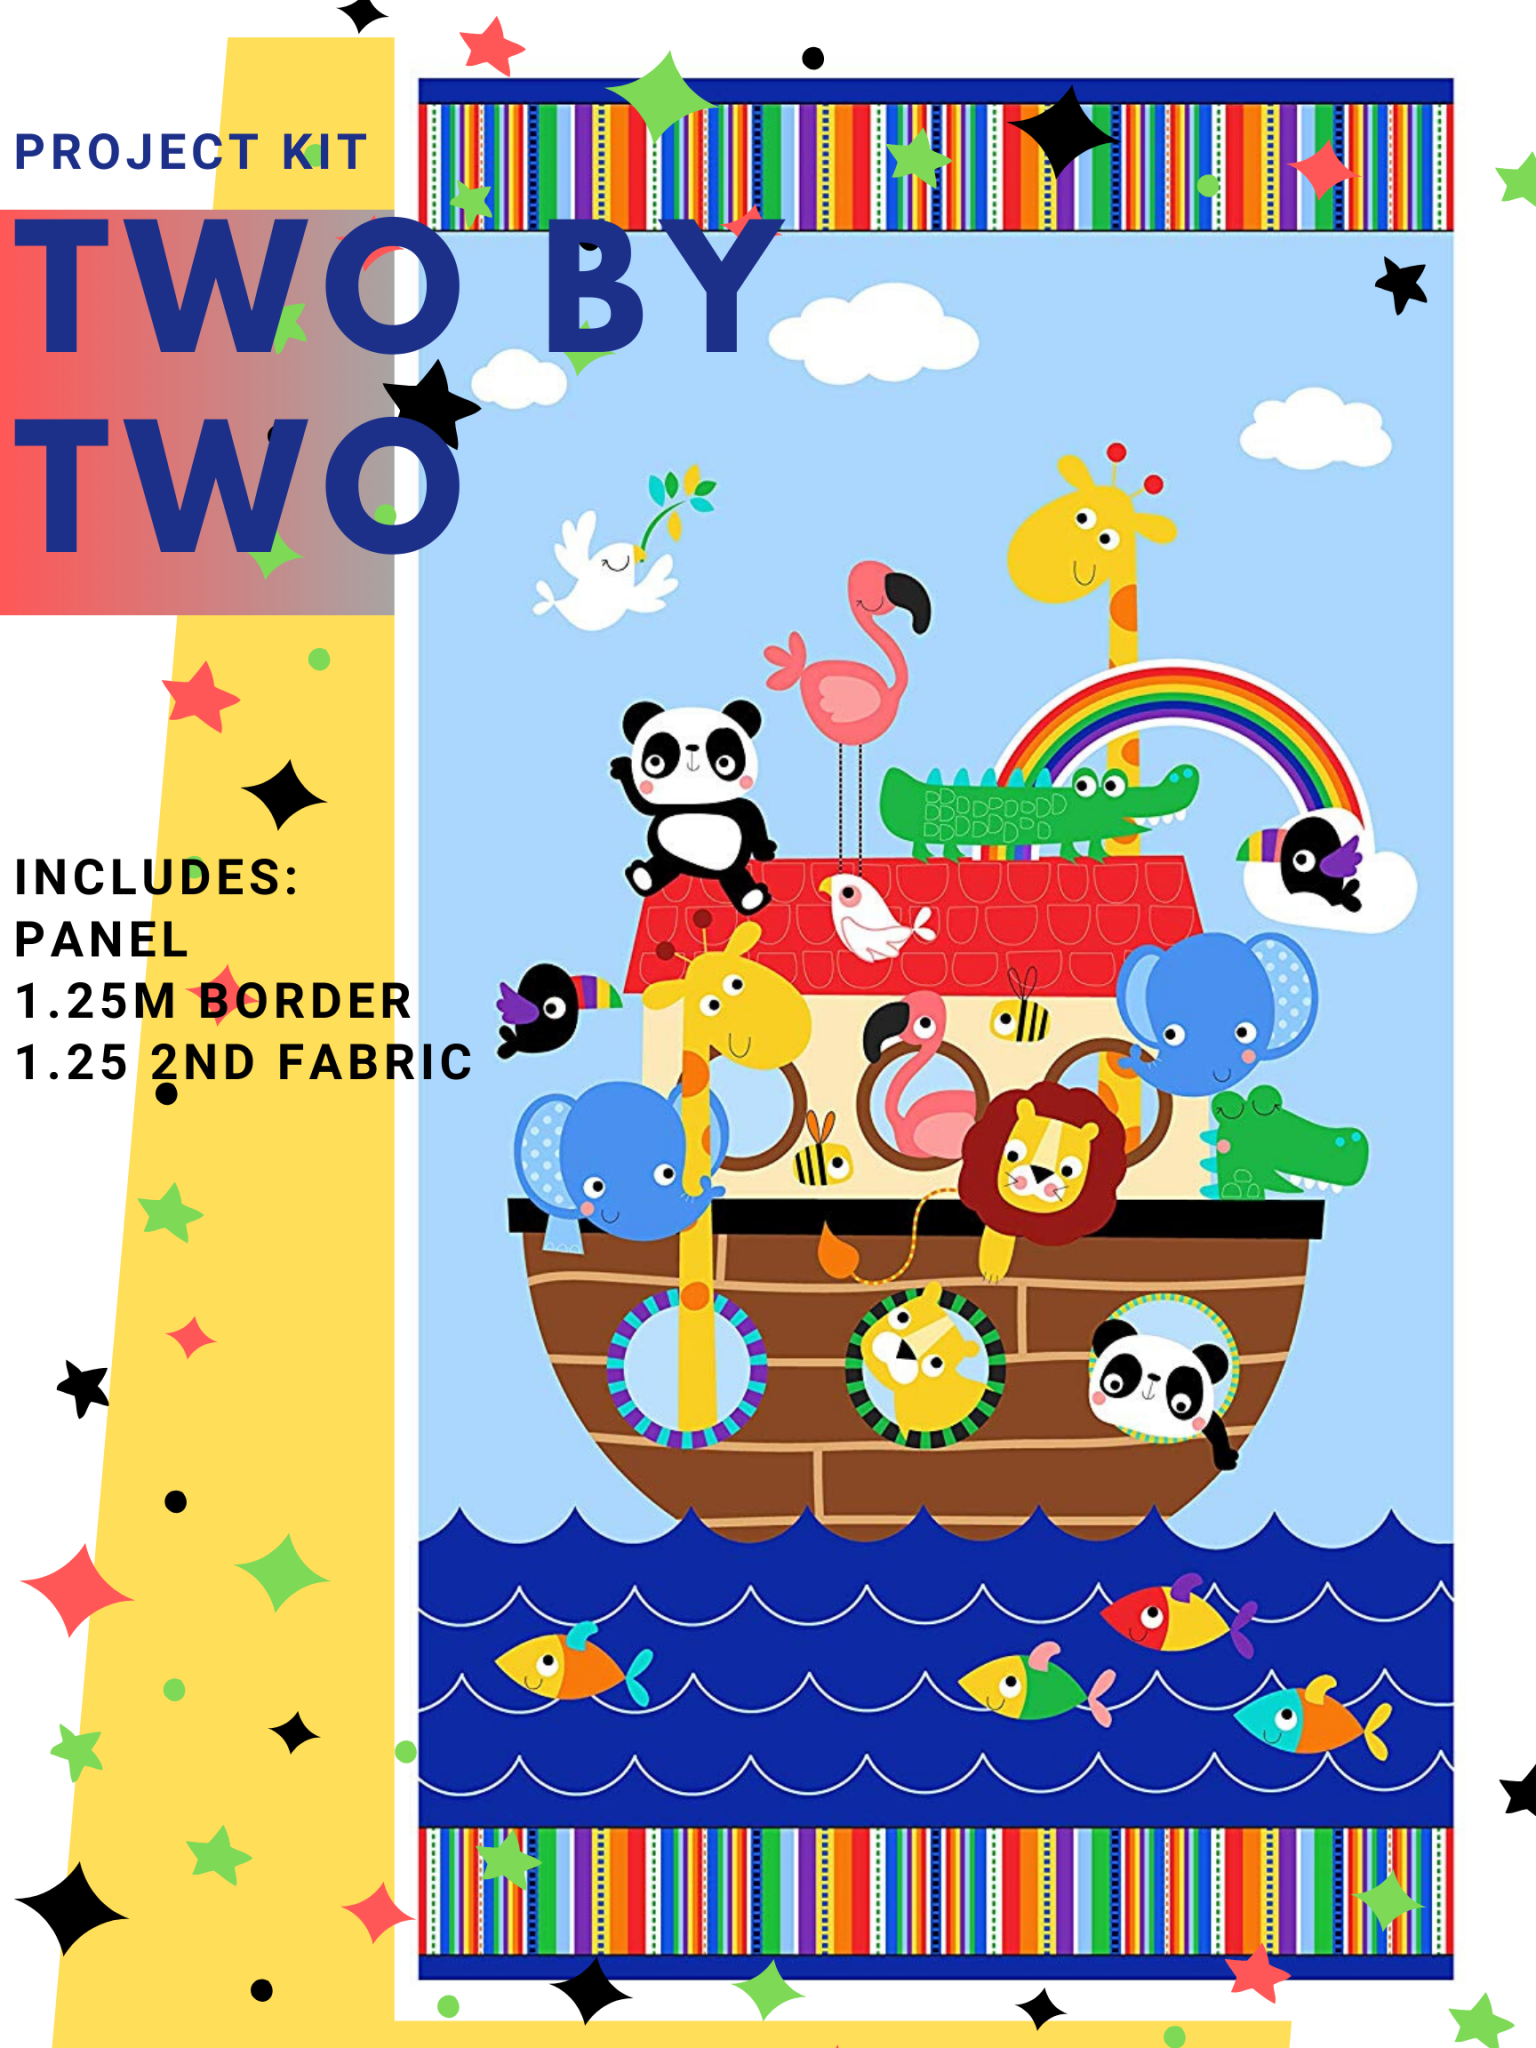 TIMELESS TREASURES PROJECT KIT TWO BY TWO